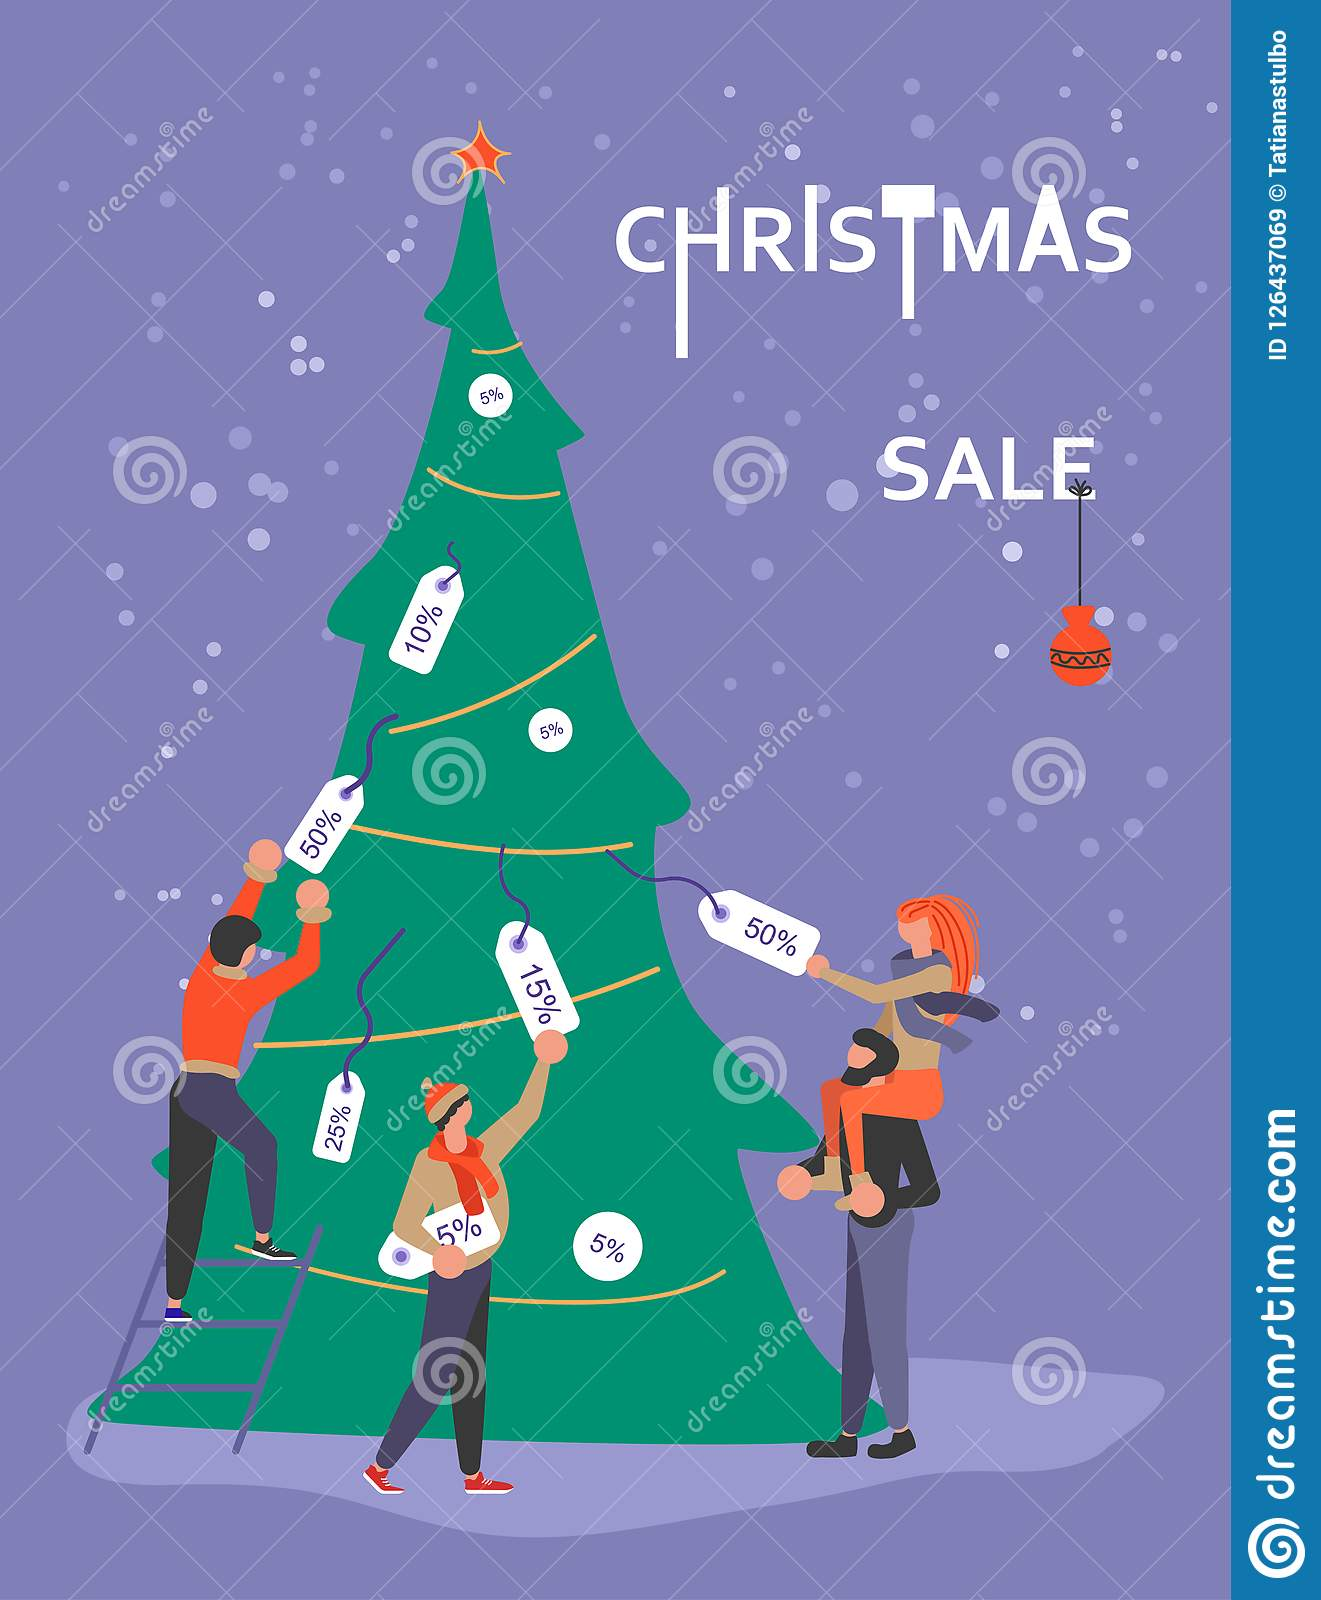 Banner For Christmas Sale Stock Vector Illustration Of Business